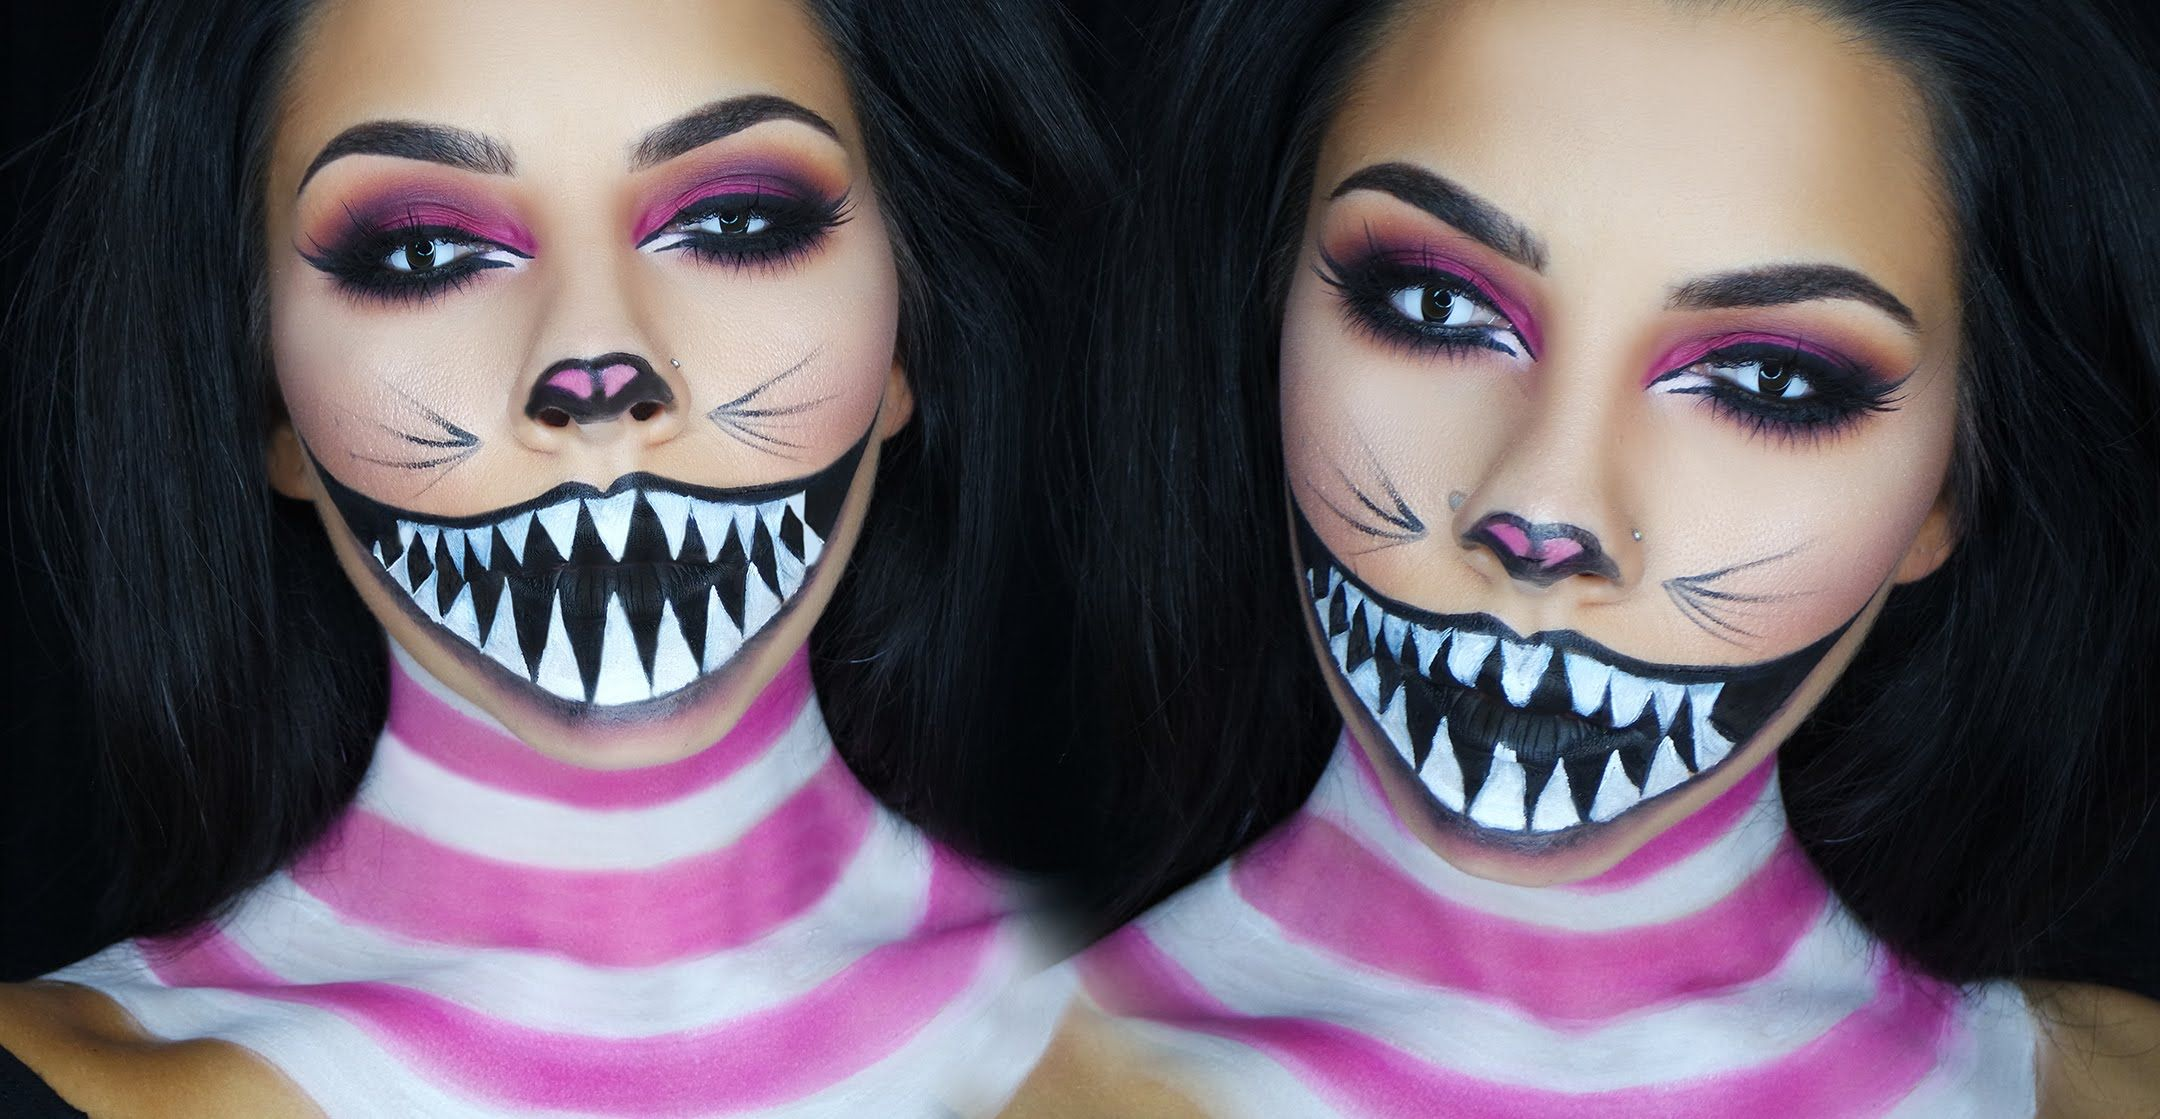 cheshire cat halloween makeup tutorial - Halloween Tutorials